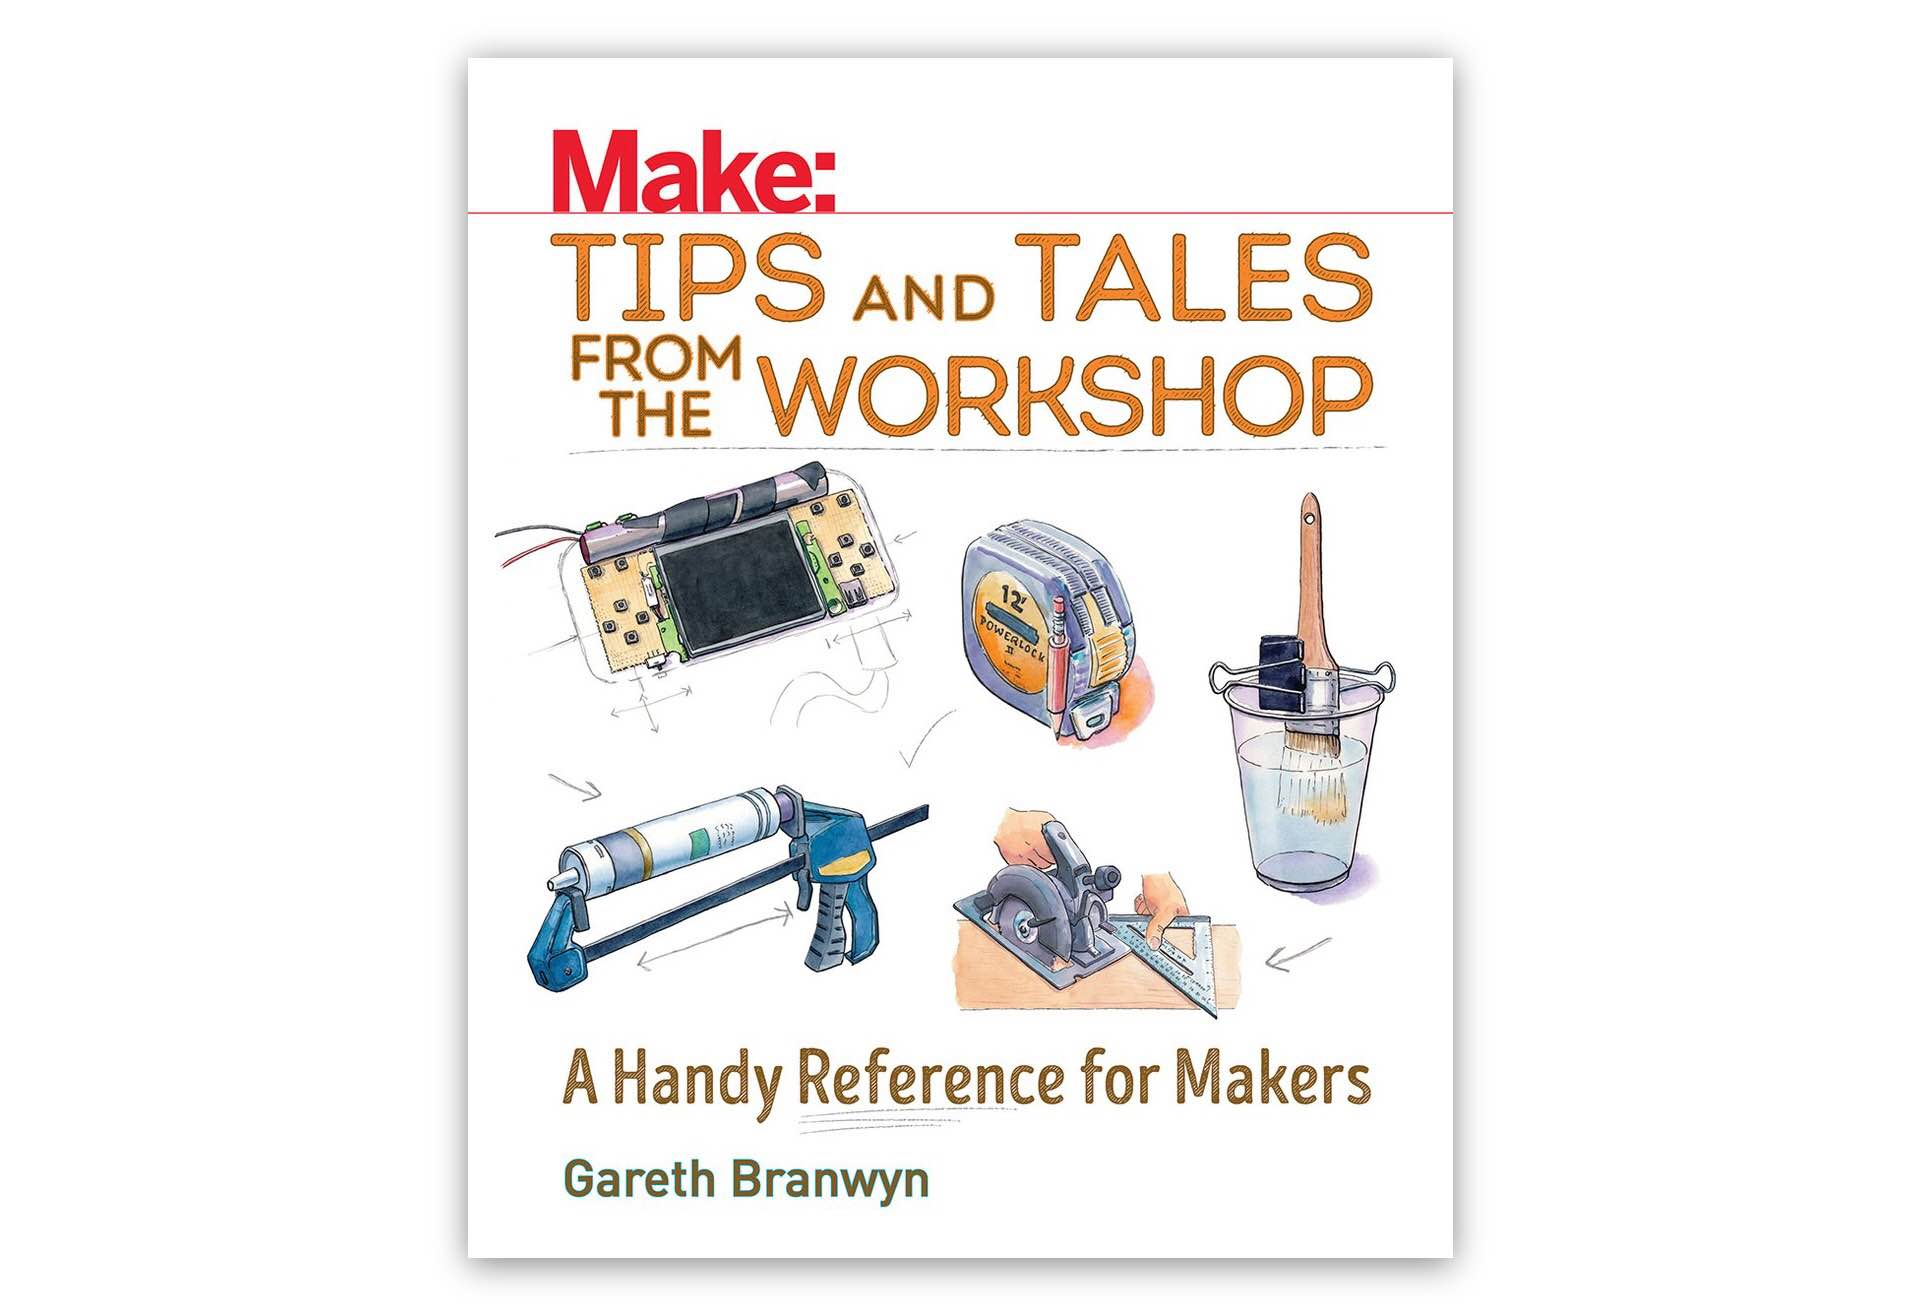 make-tips-and-tales-from-the-workshop-by-gareth-branwyn